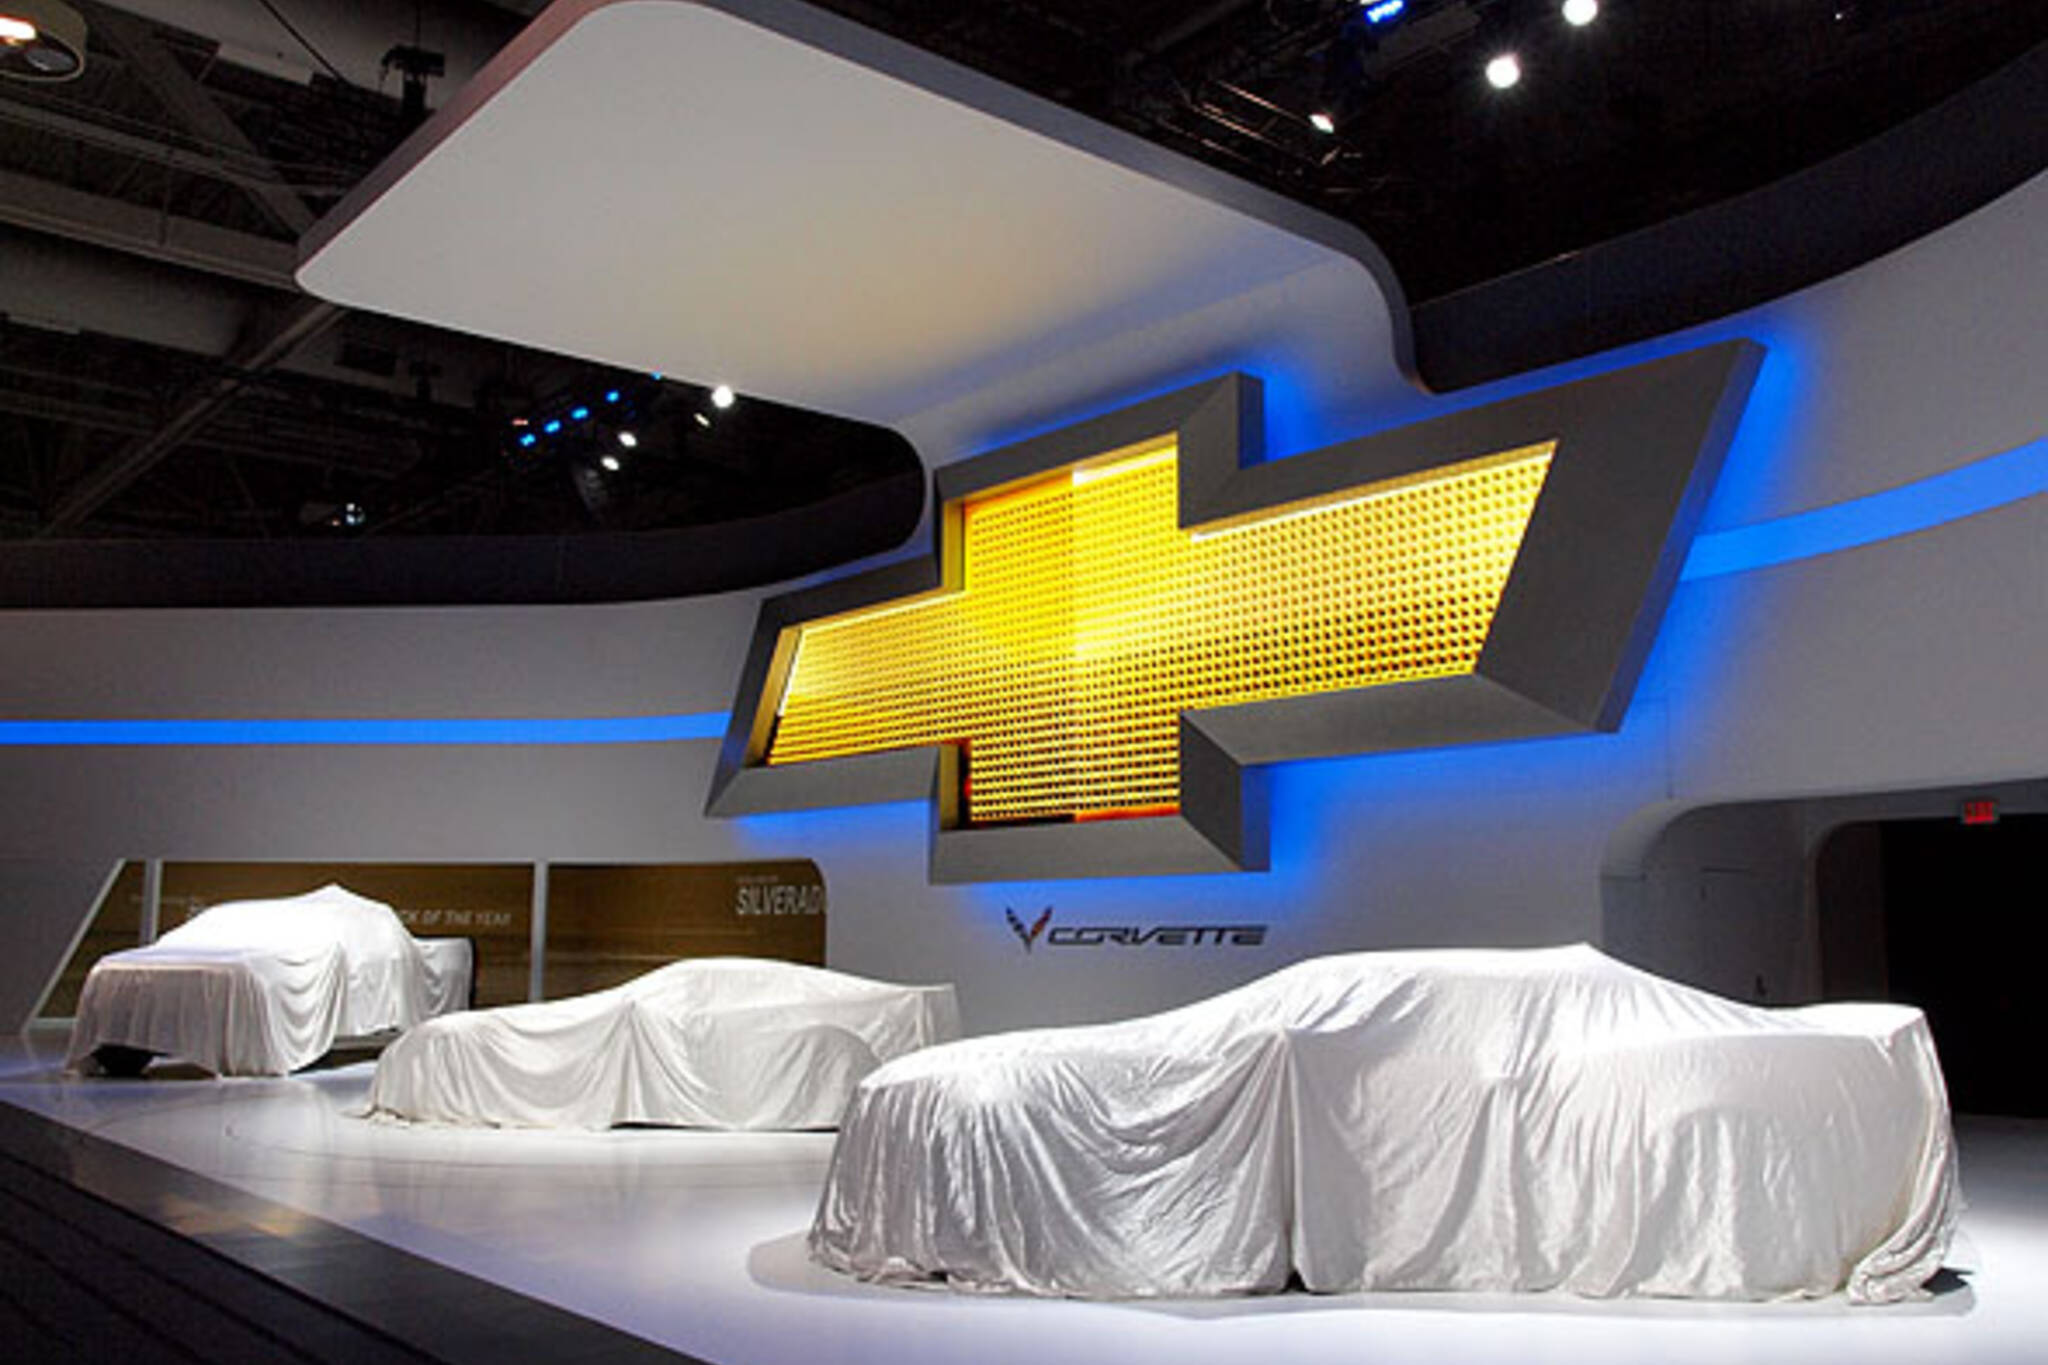 Chevy booth at the 2014 CIAS